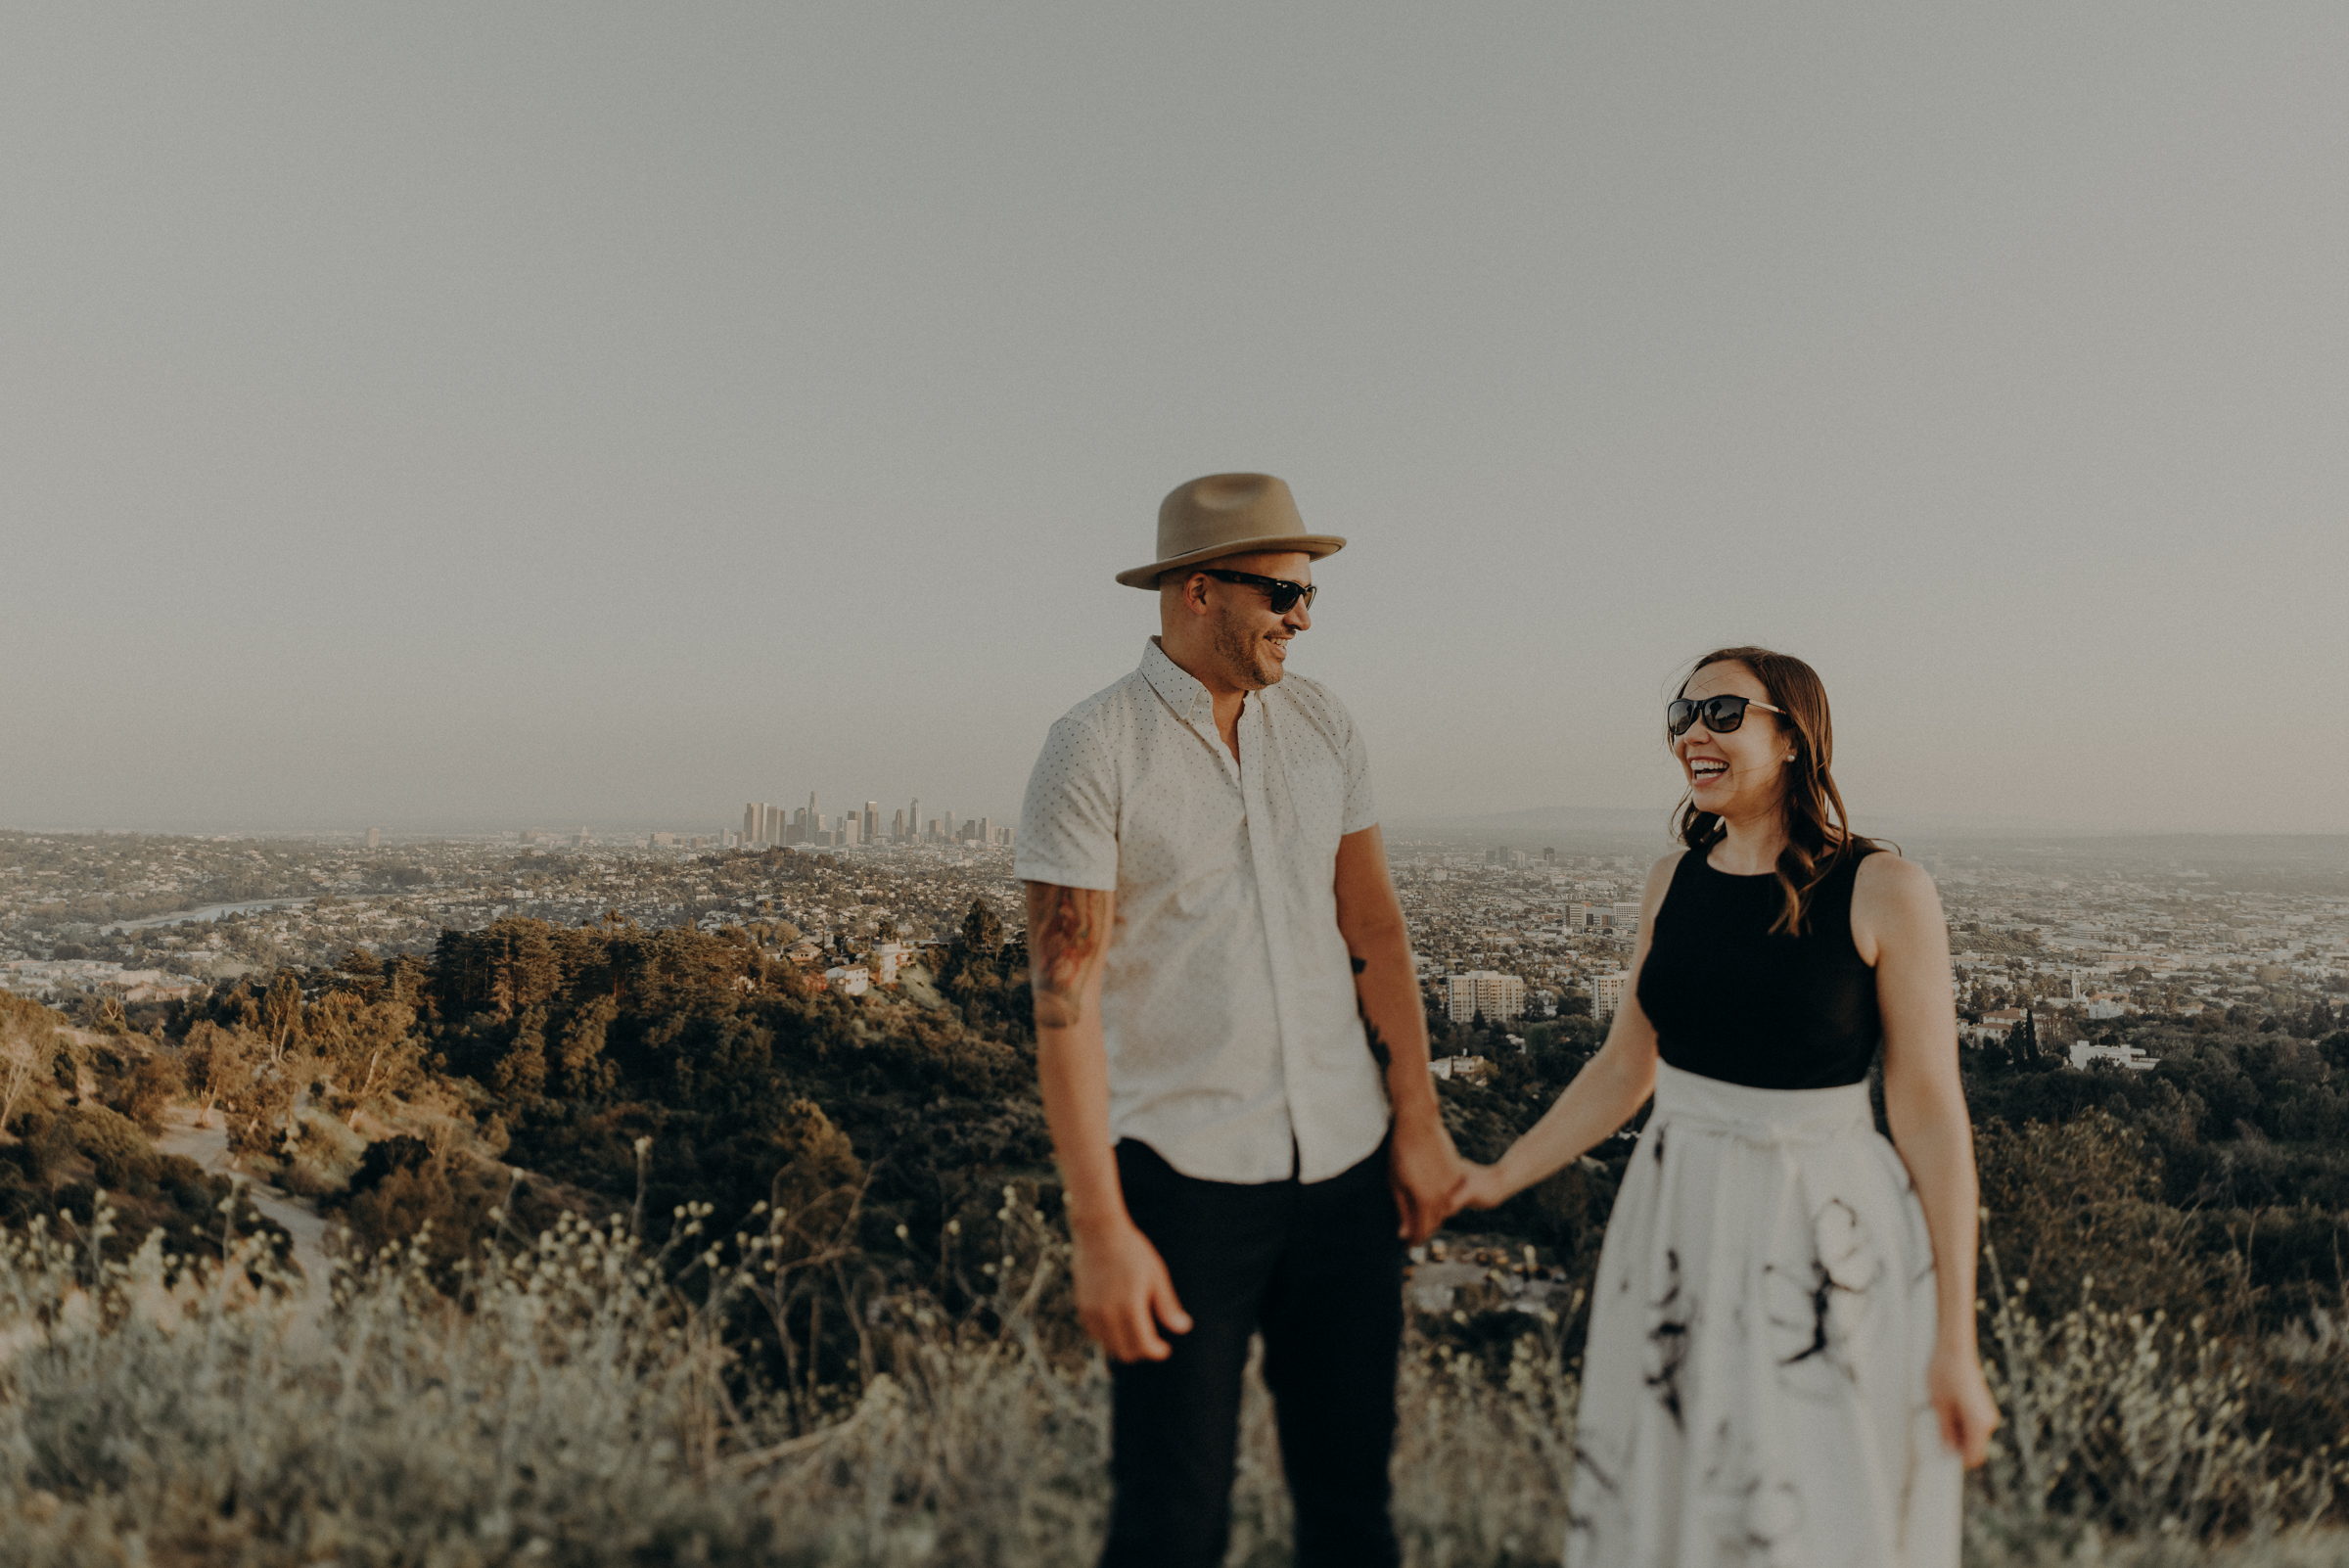 Los Angeles Wedding Photographers - Griffith Park Engagement - IsaiahAndTaylor.com-048.jpg